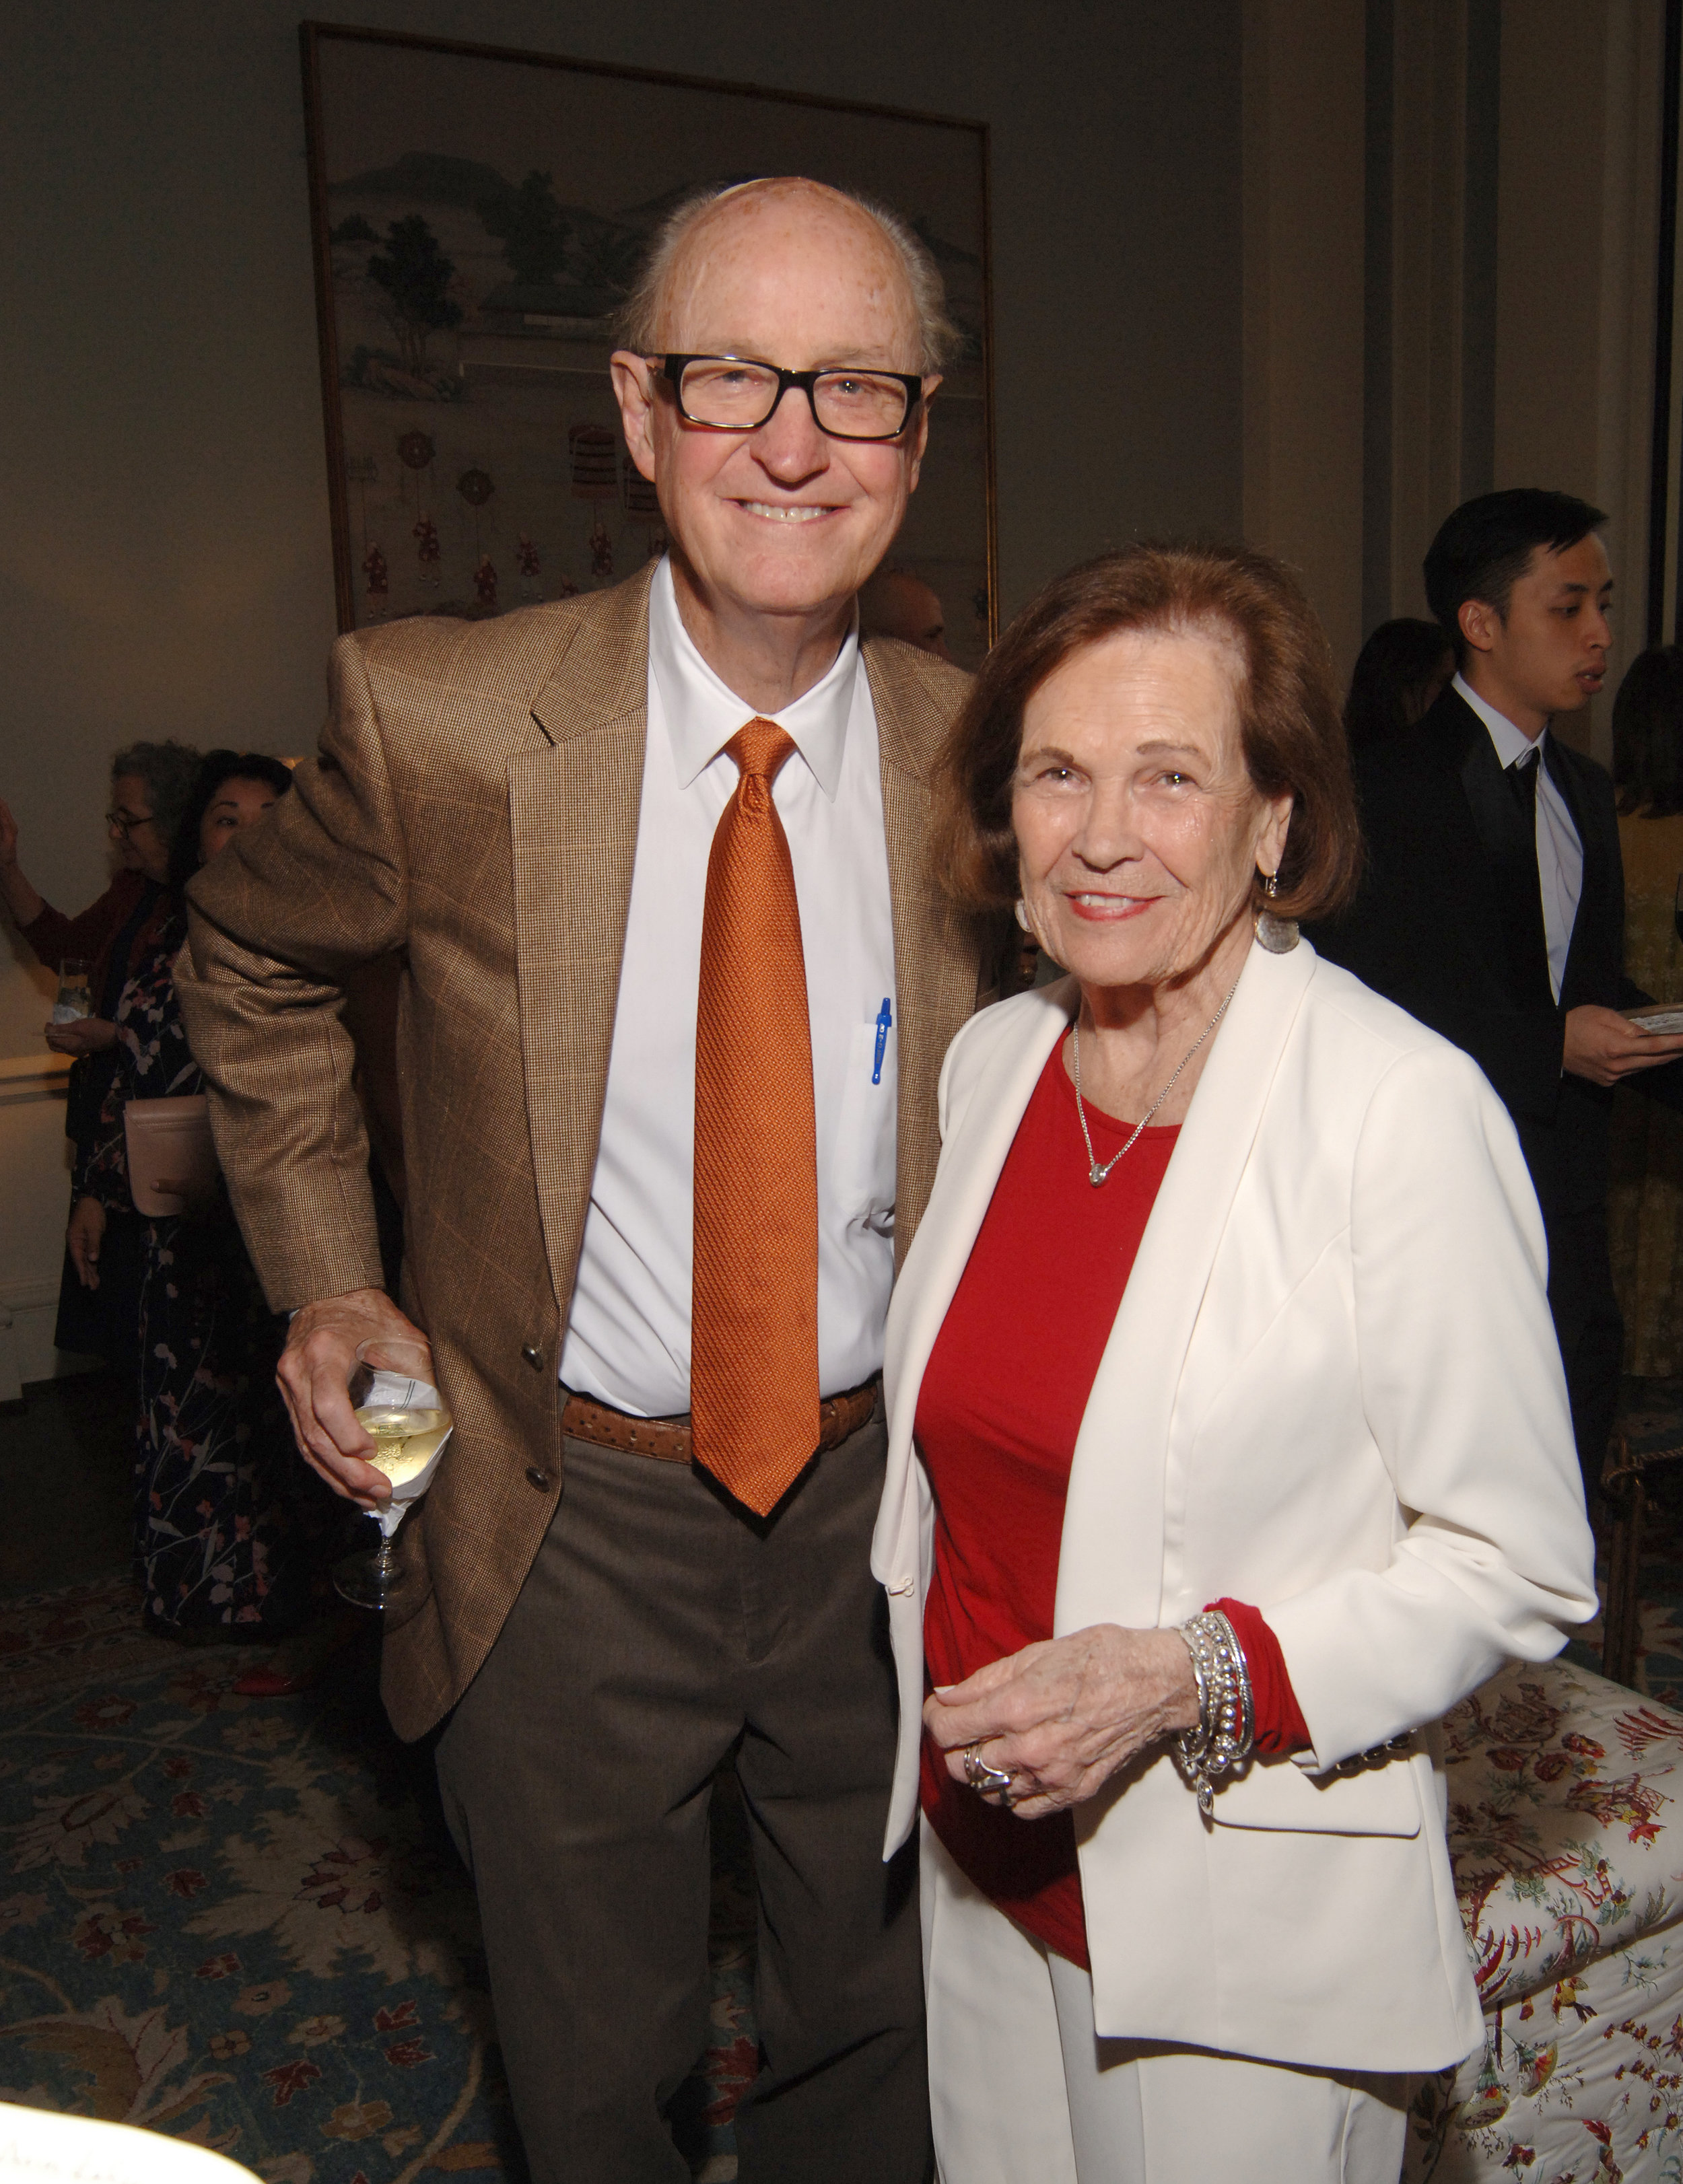 KPCGala_Bob and Karen Moore_Tom  DuBrock photo.JPG